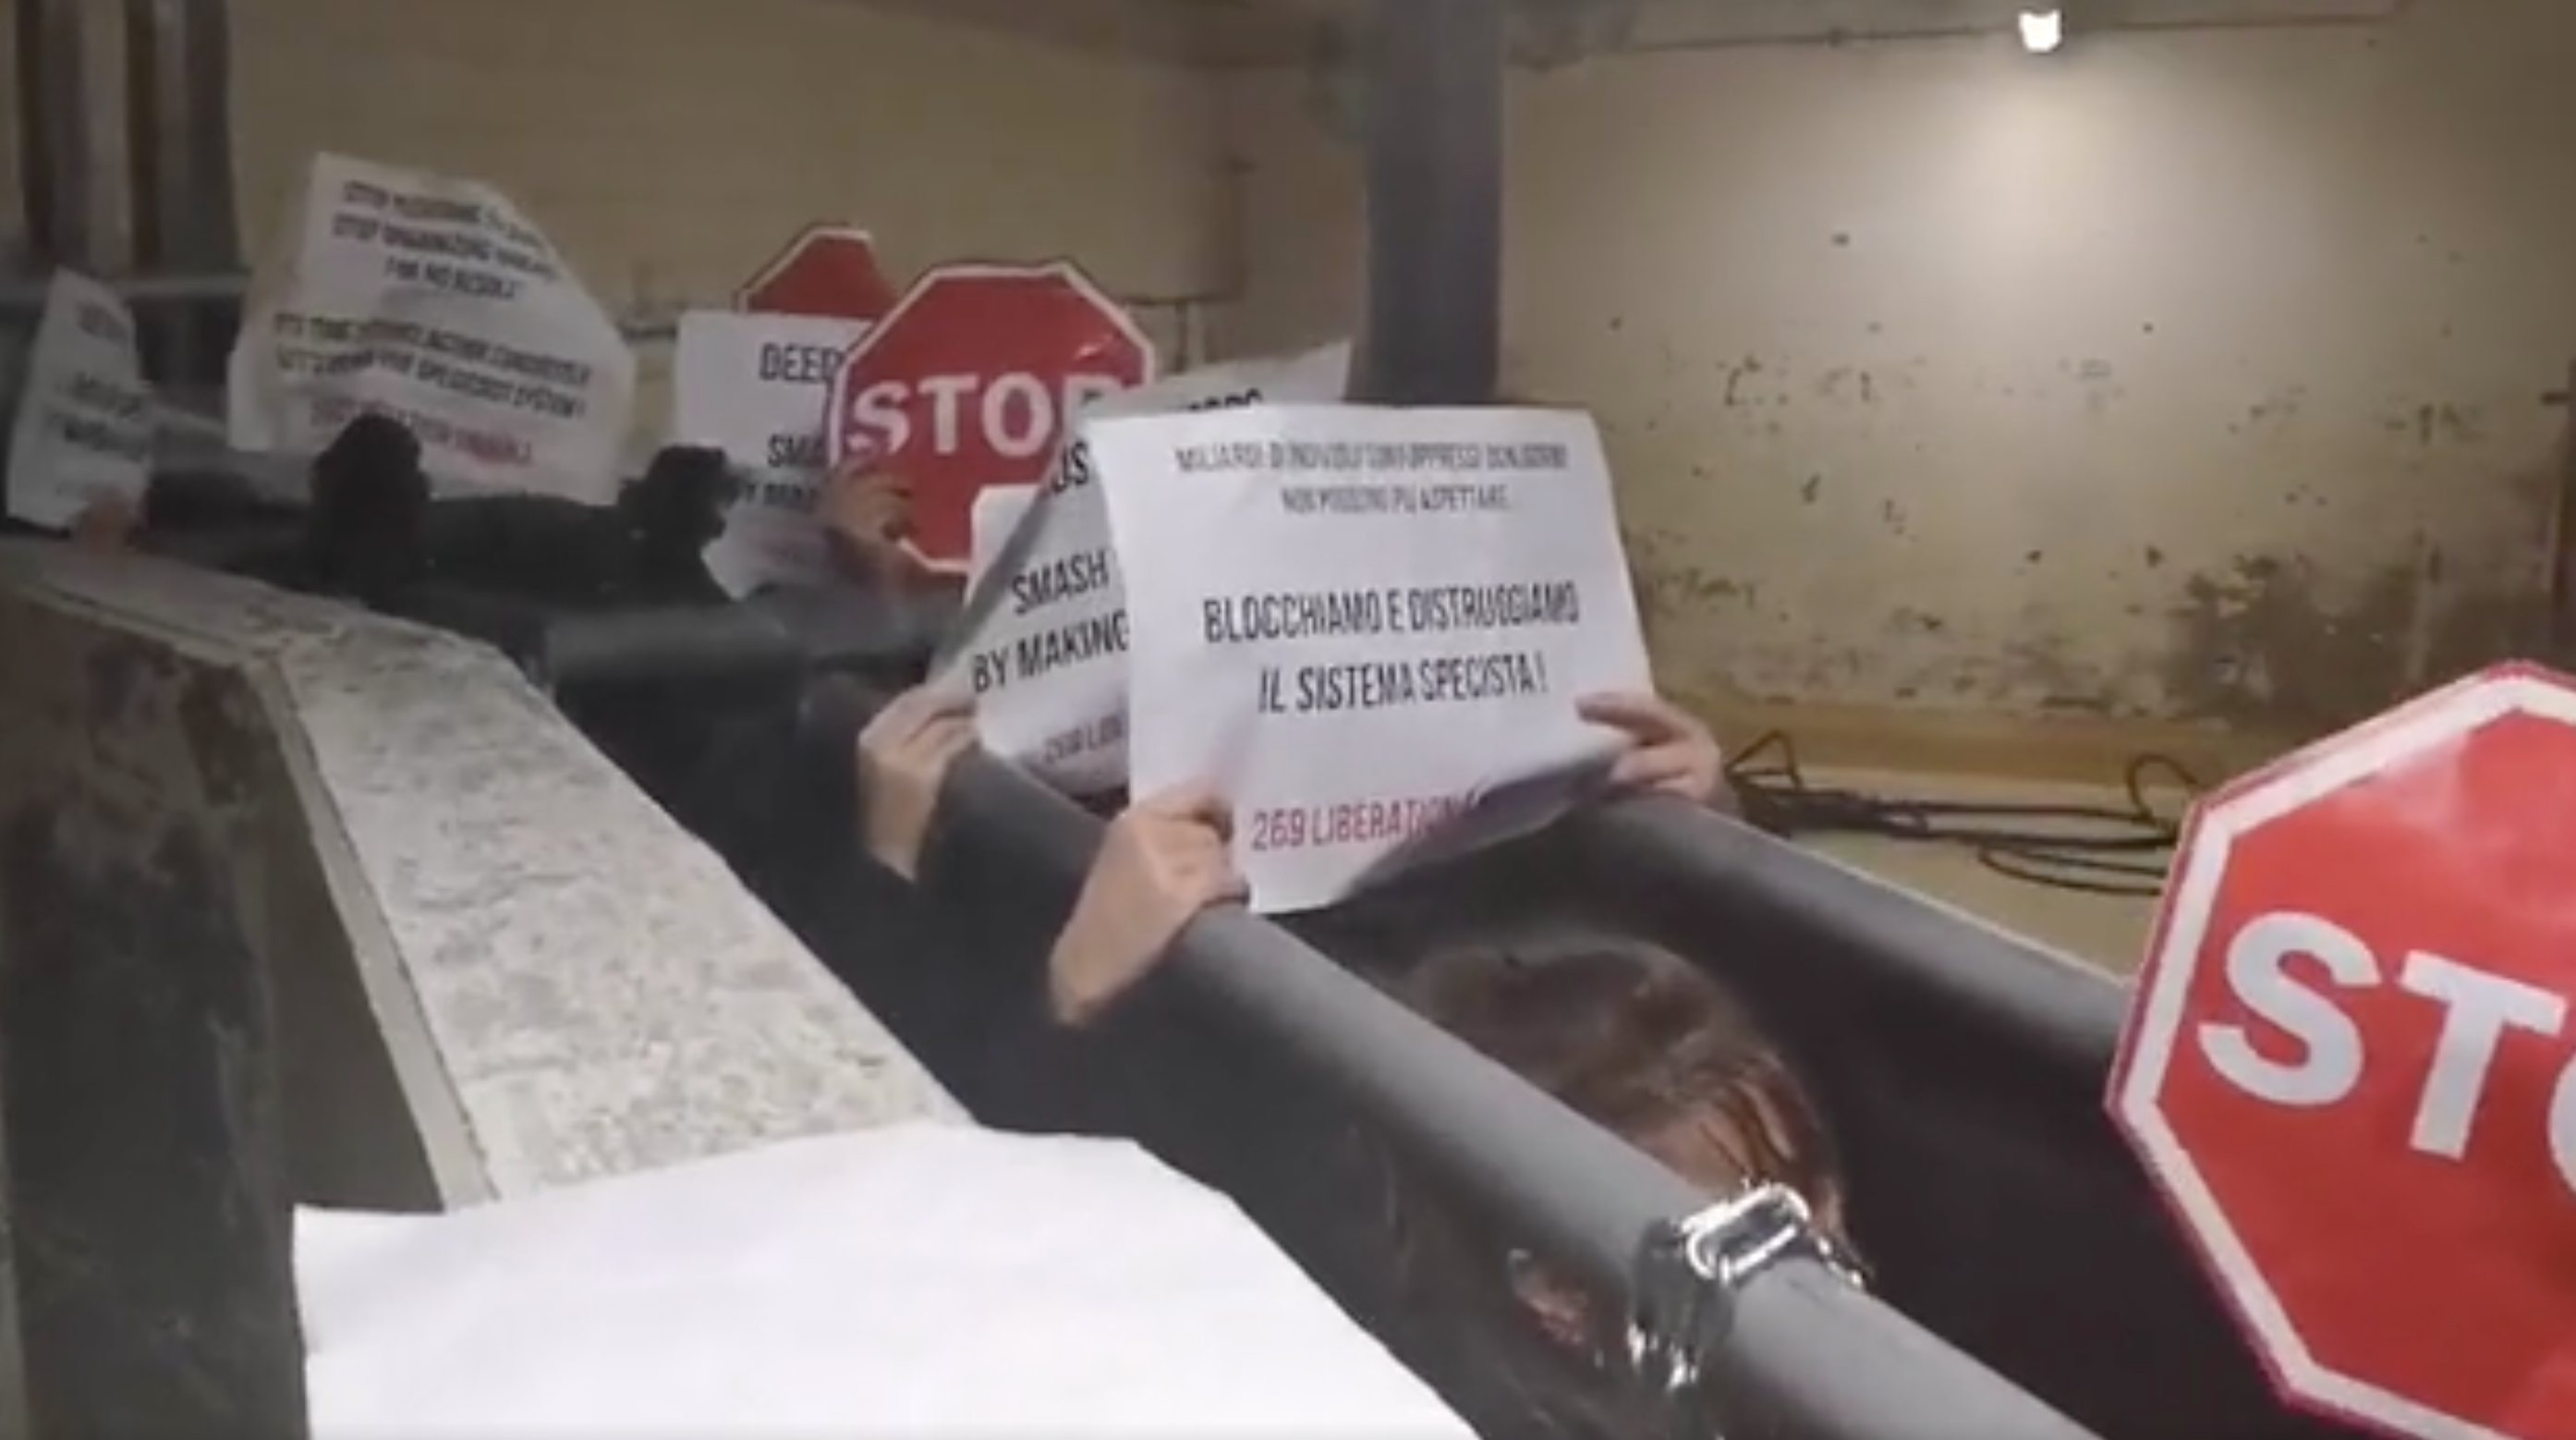 Vegan activists shut down a Swiss slaughterhouse